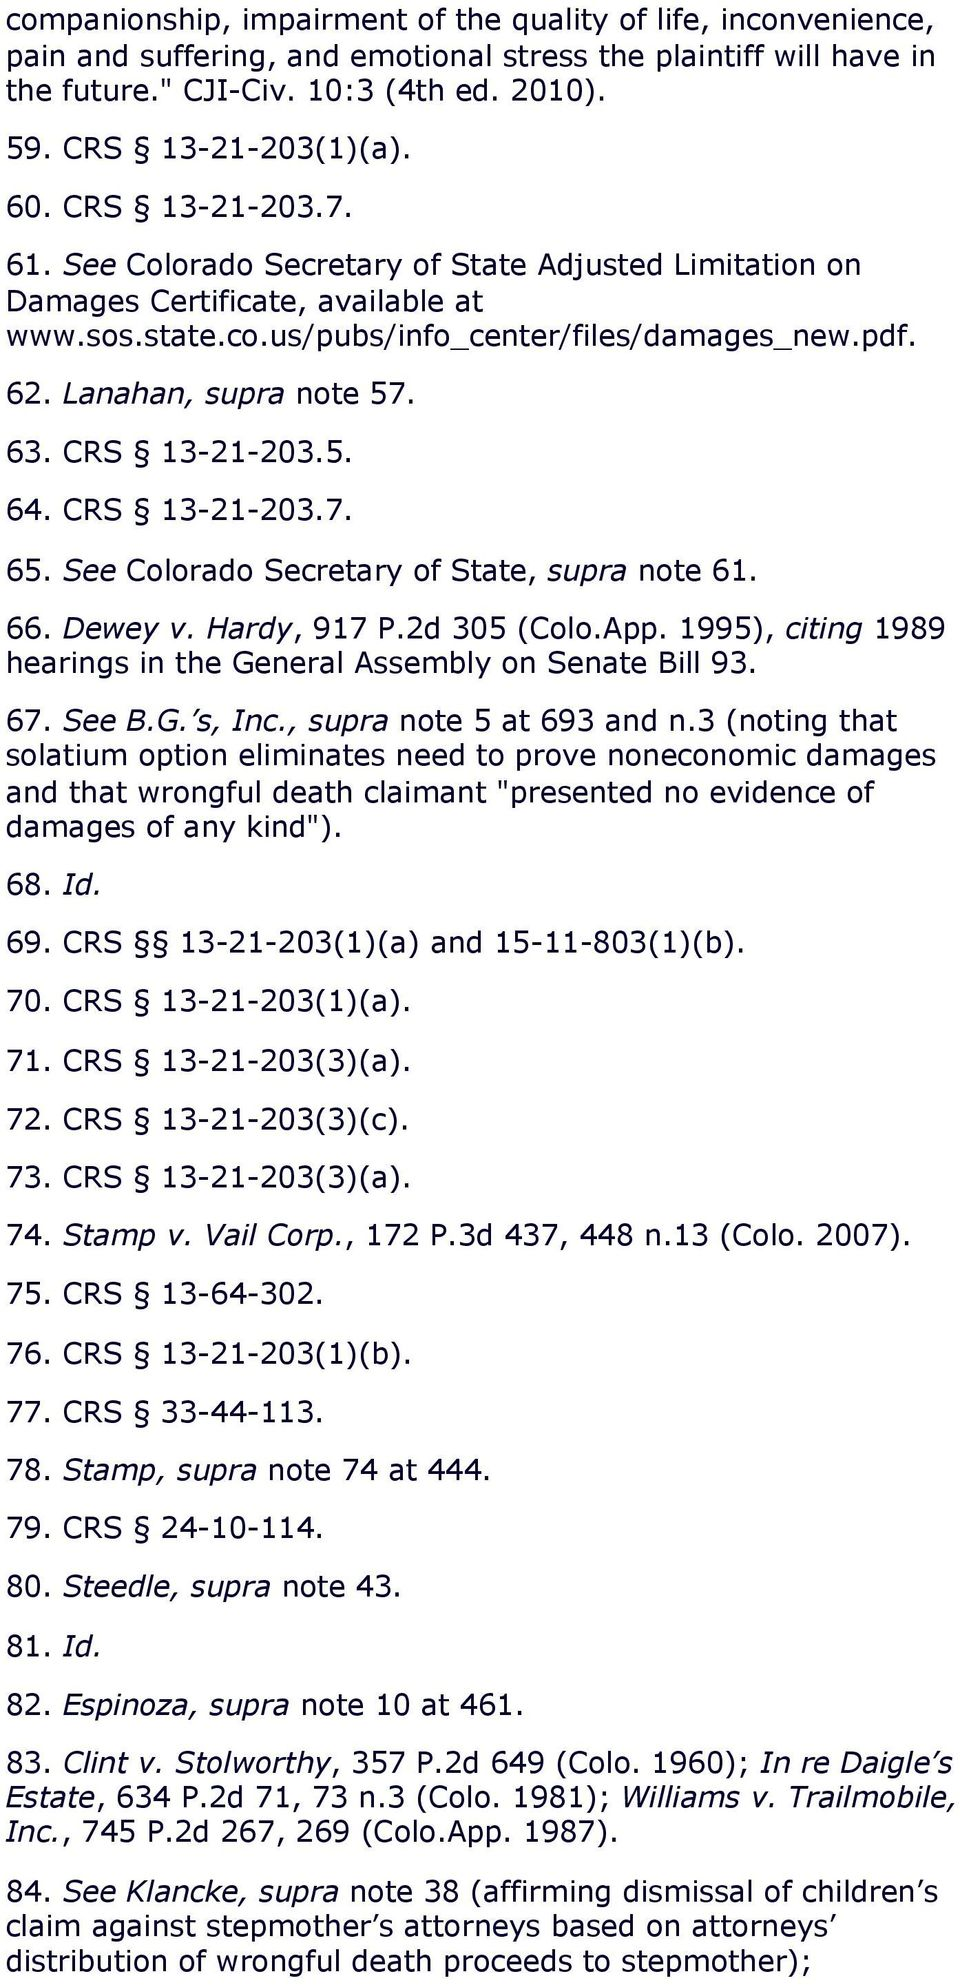 Lanahan, supra note 57. 63. CRS 13-21-203.5. 64. CRS 13-21-203.7. 65. See Colorado Secretary of State, supra note 61. 66. Dewey v. Hardy, 917 P.2d 305 (Colo.App.